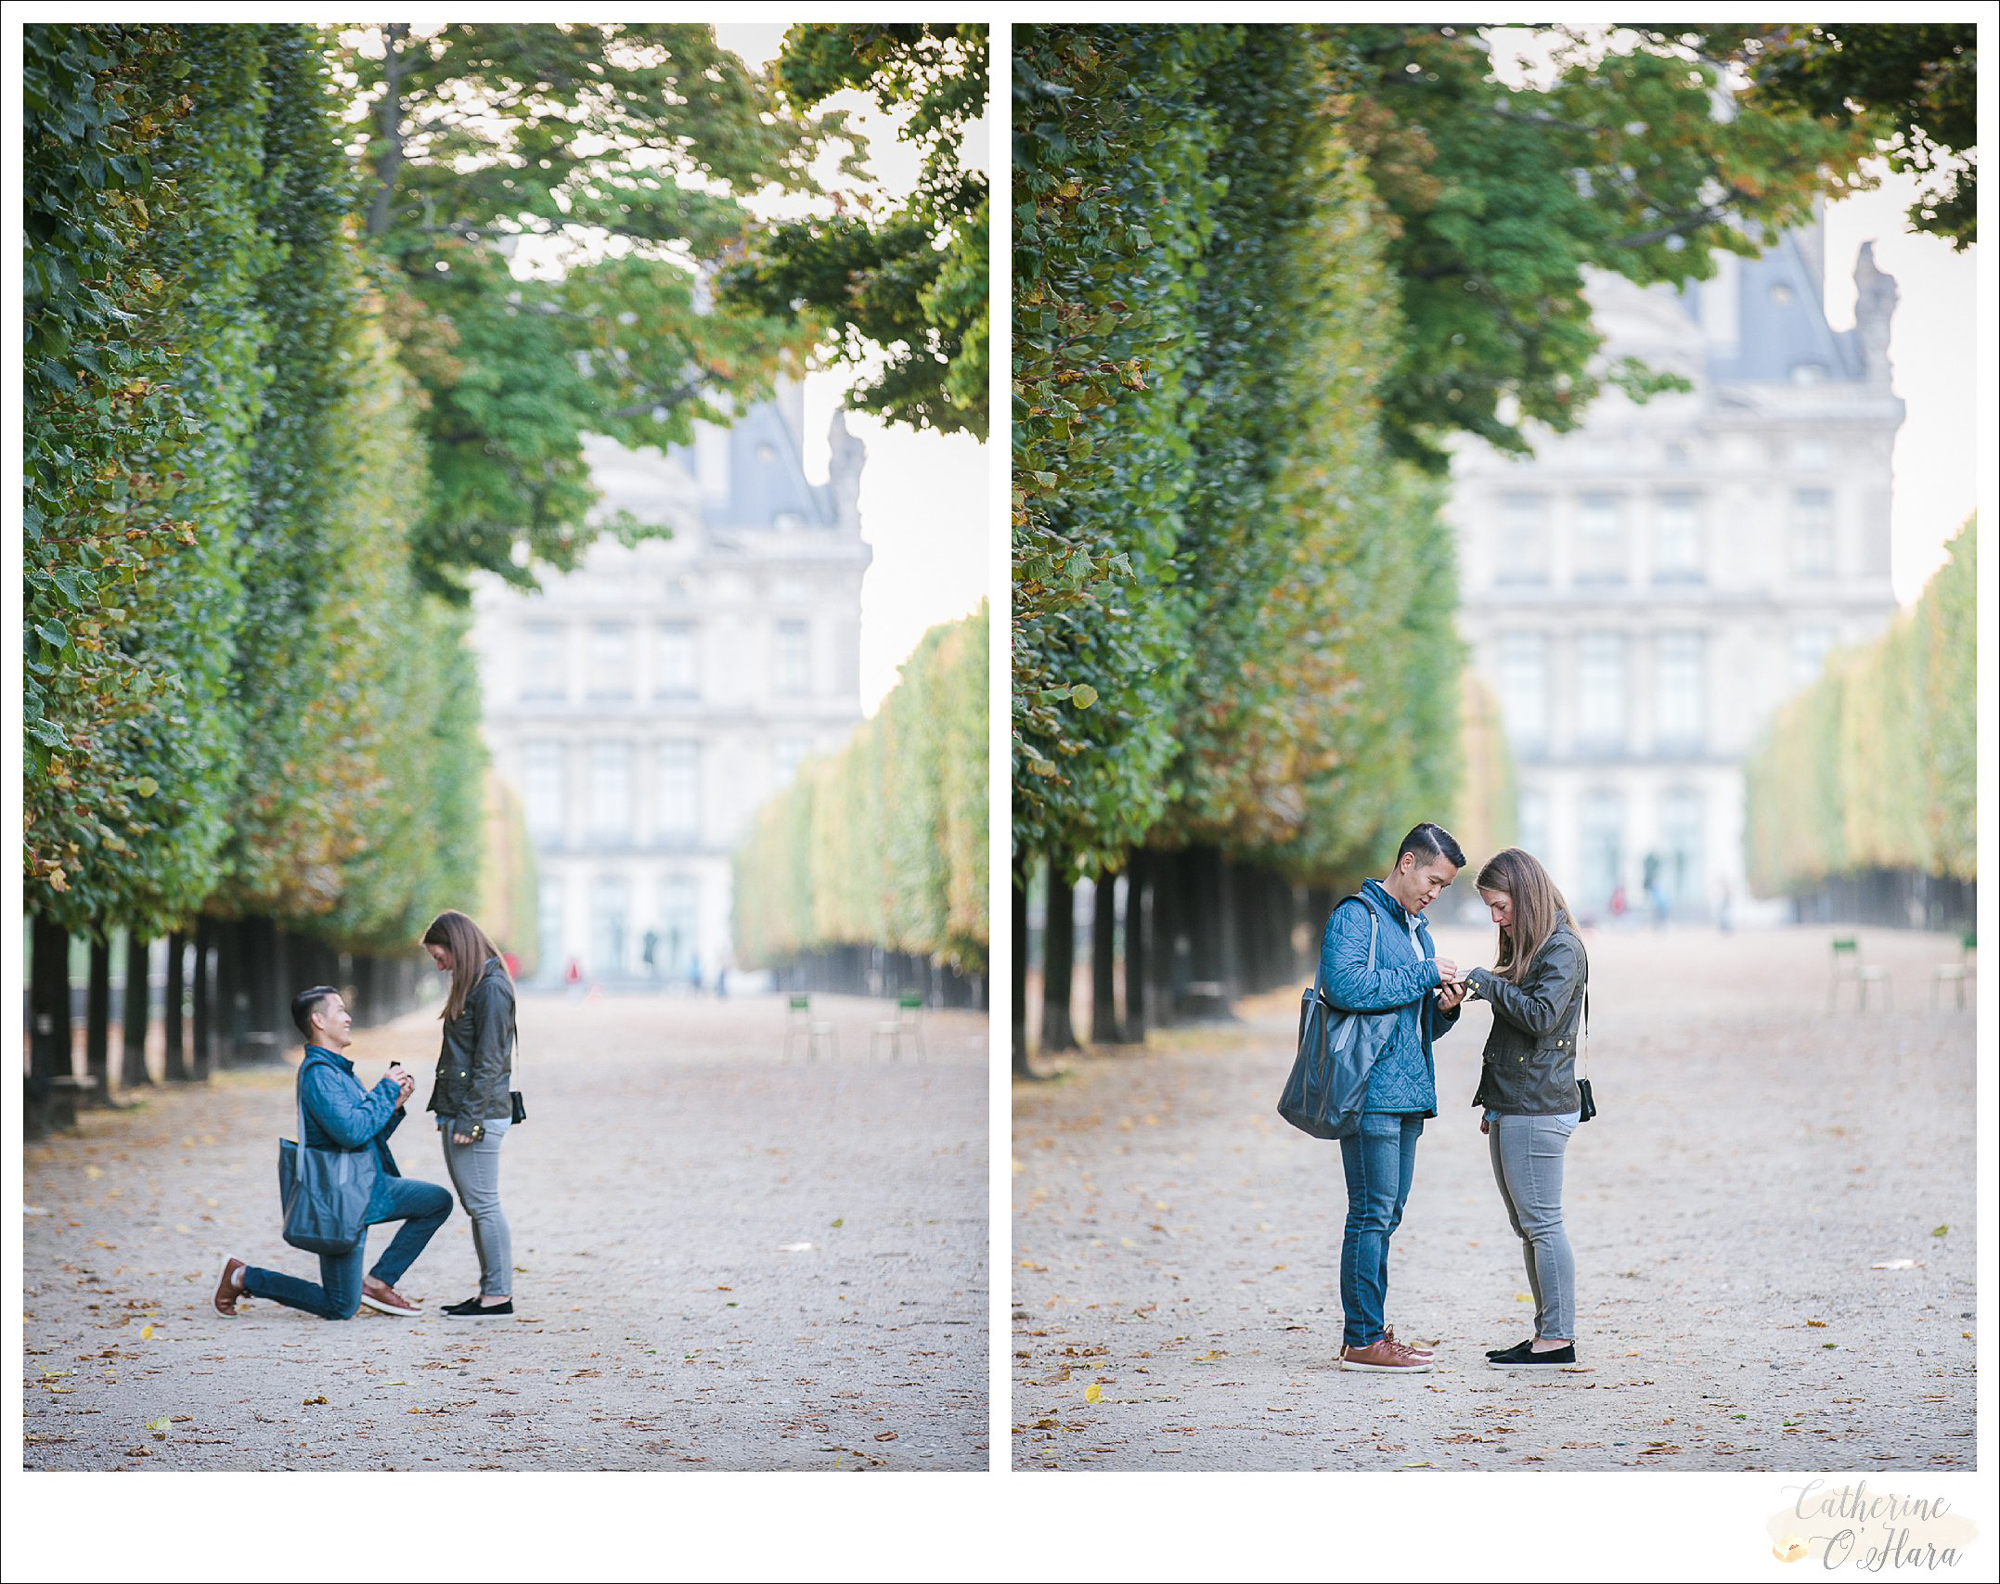 surprise proposal engagement photographer paris france-24.jpg